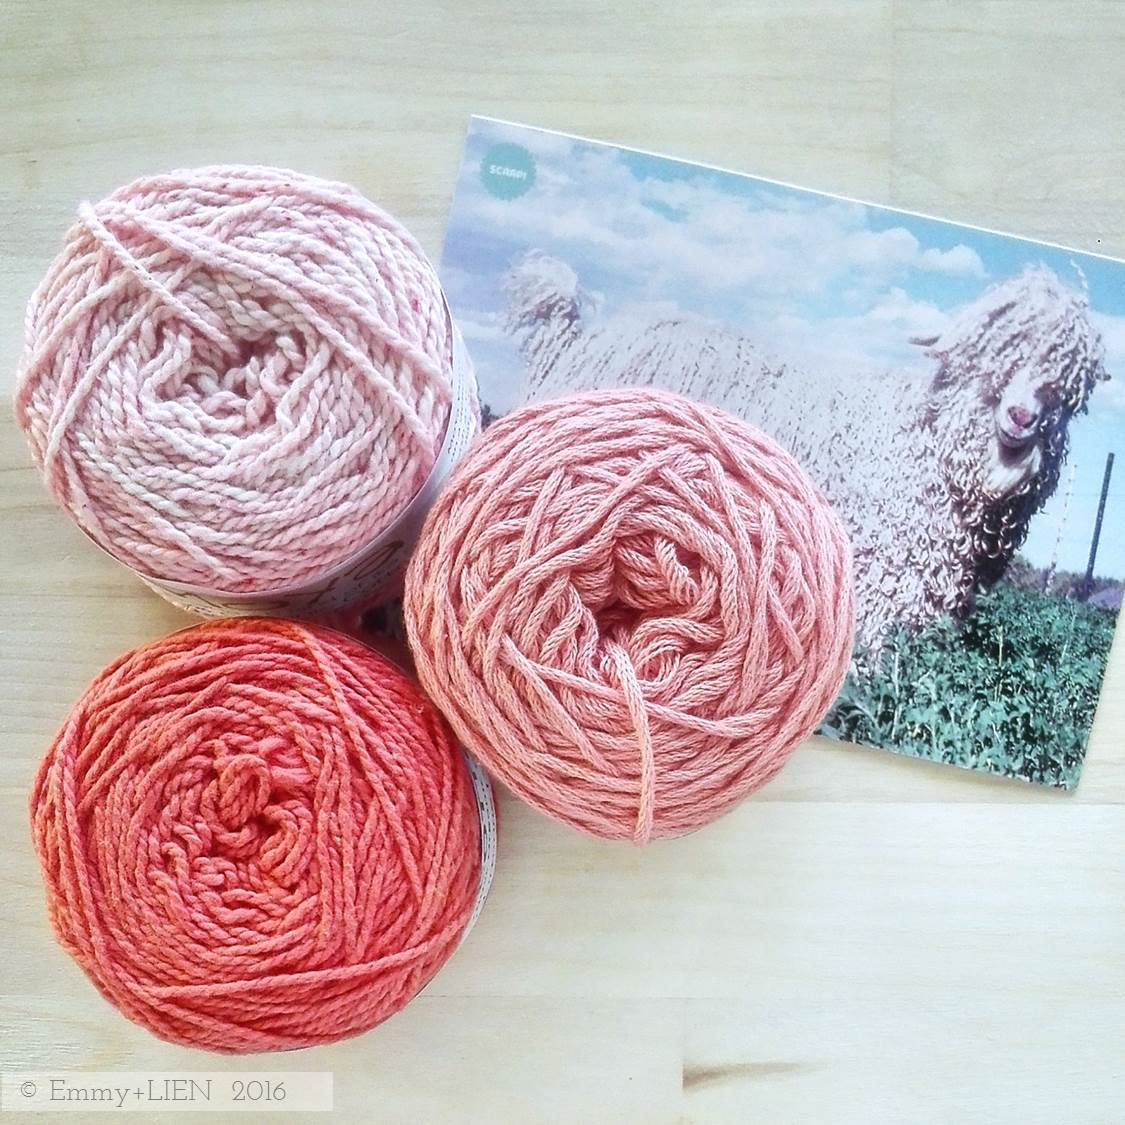 Hand-dyed African yarns supplied by Scaapi.nl - MoYa, Vinnis Colours, Nurturing Fibres